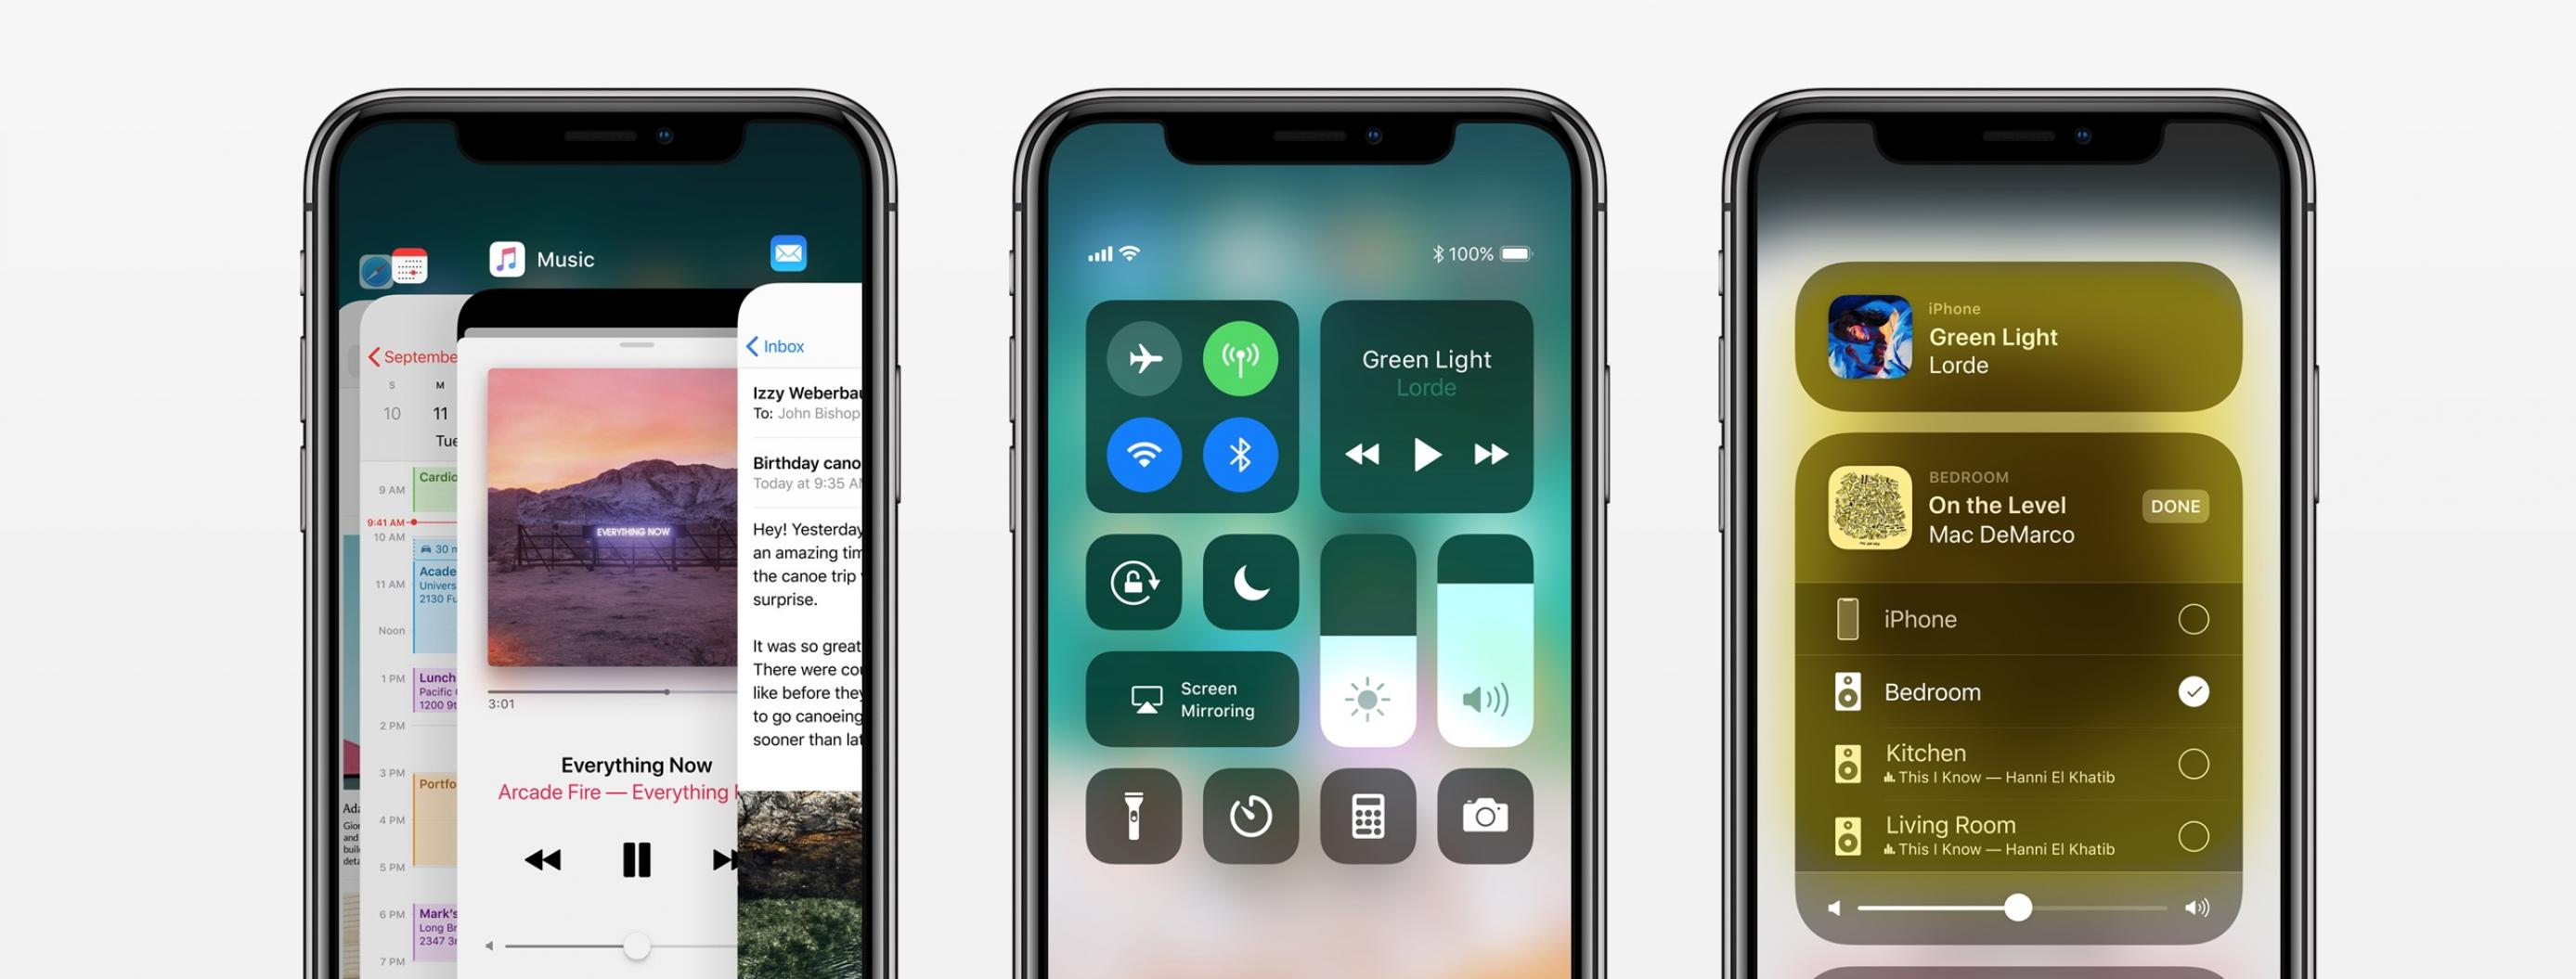 Apple's New iPhones Could Include Dual-SIM Support According to New Leaks